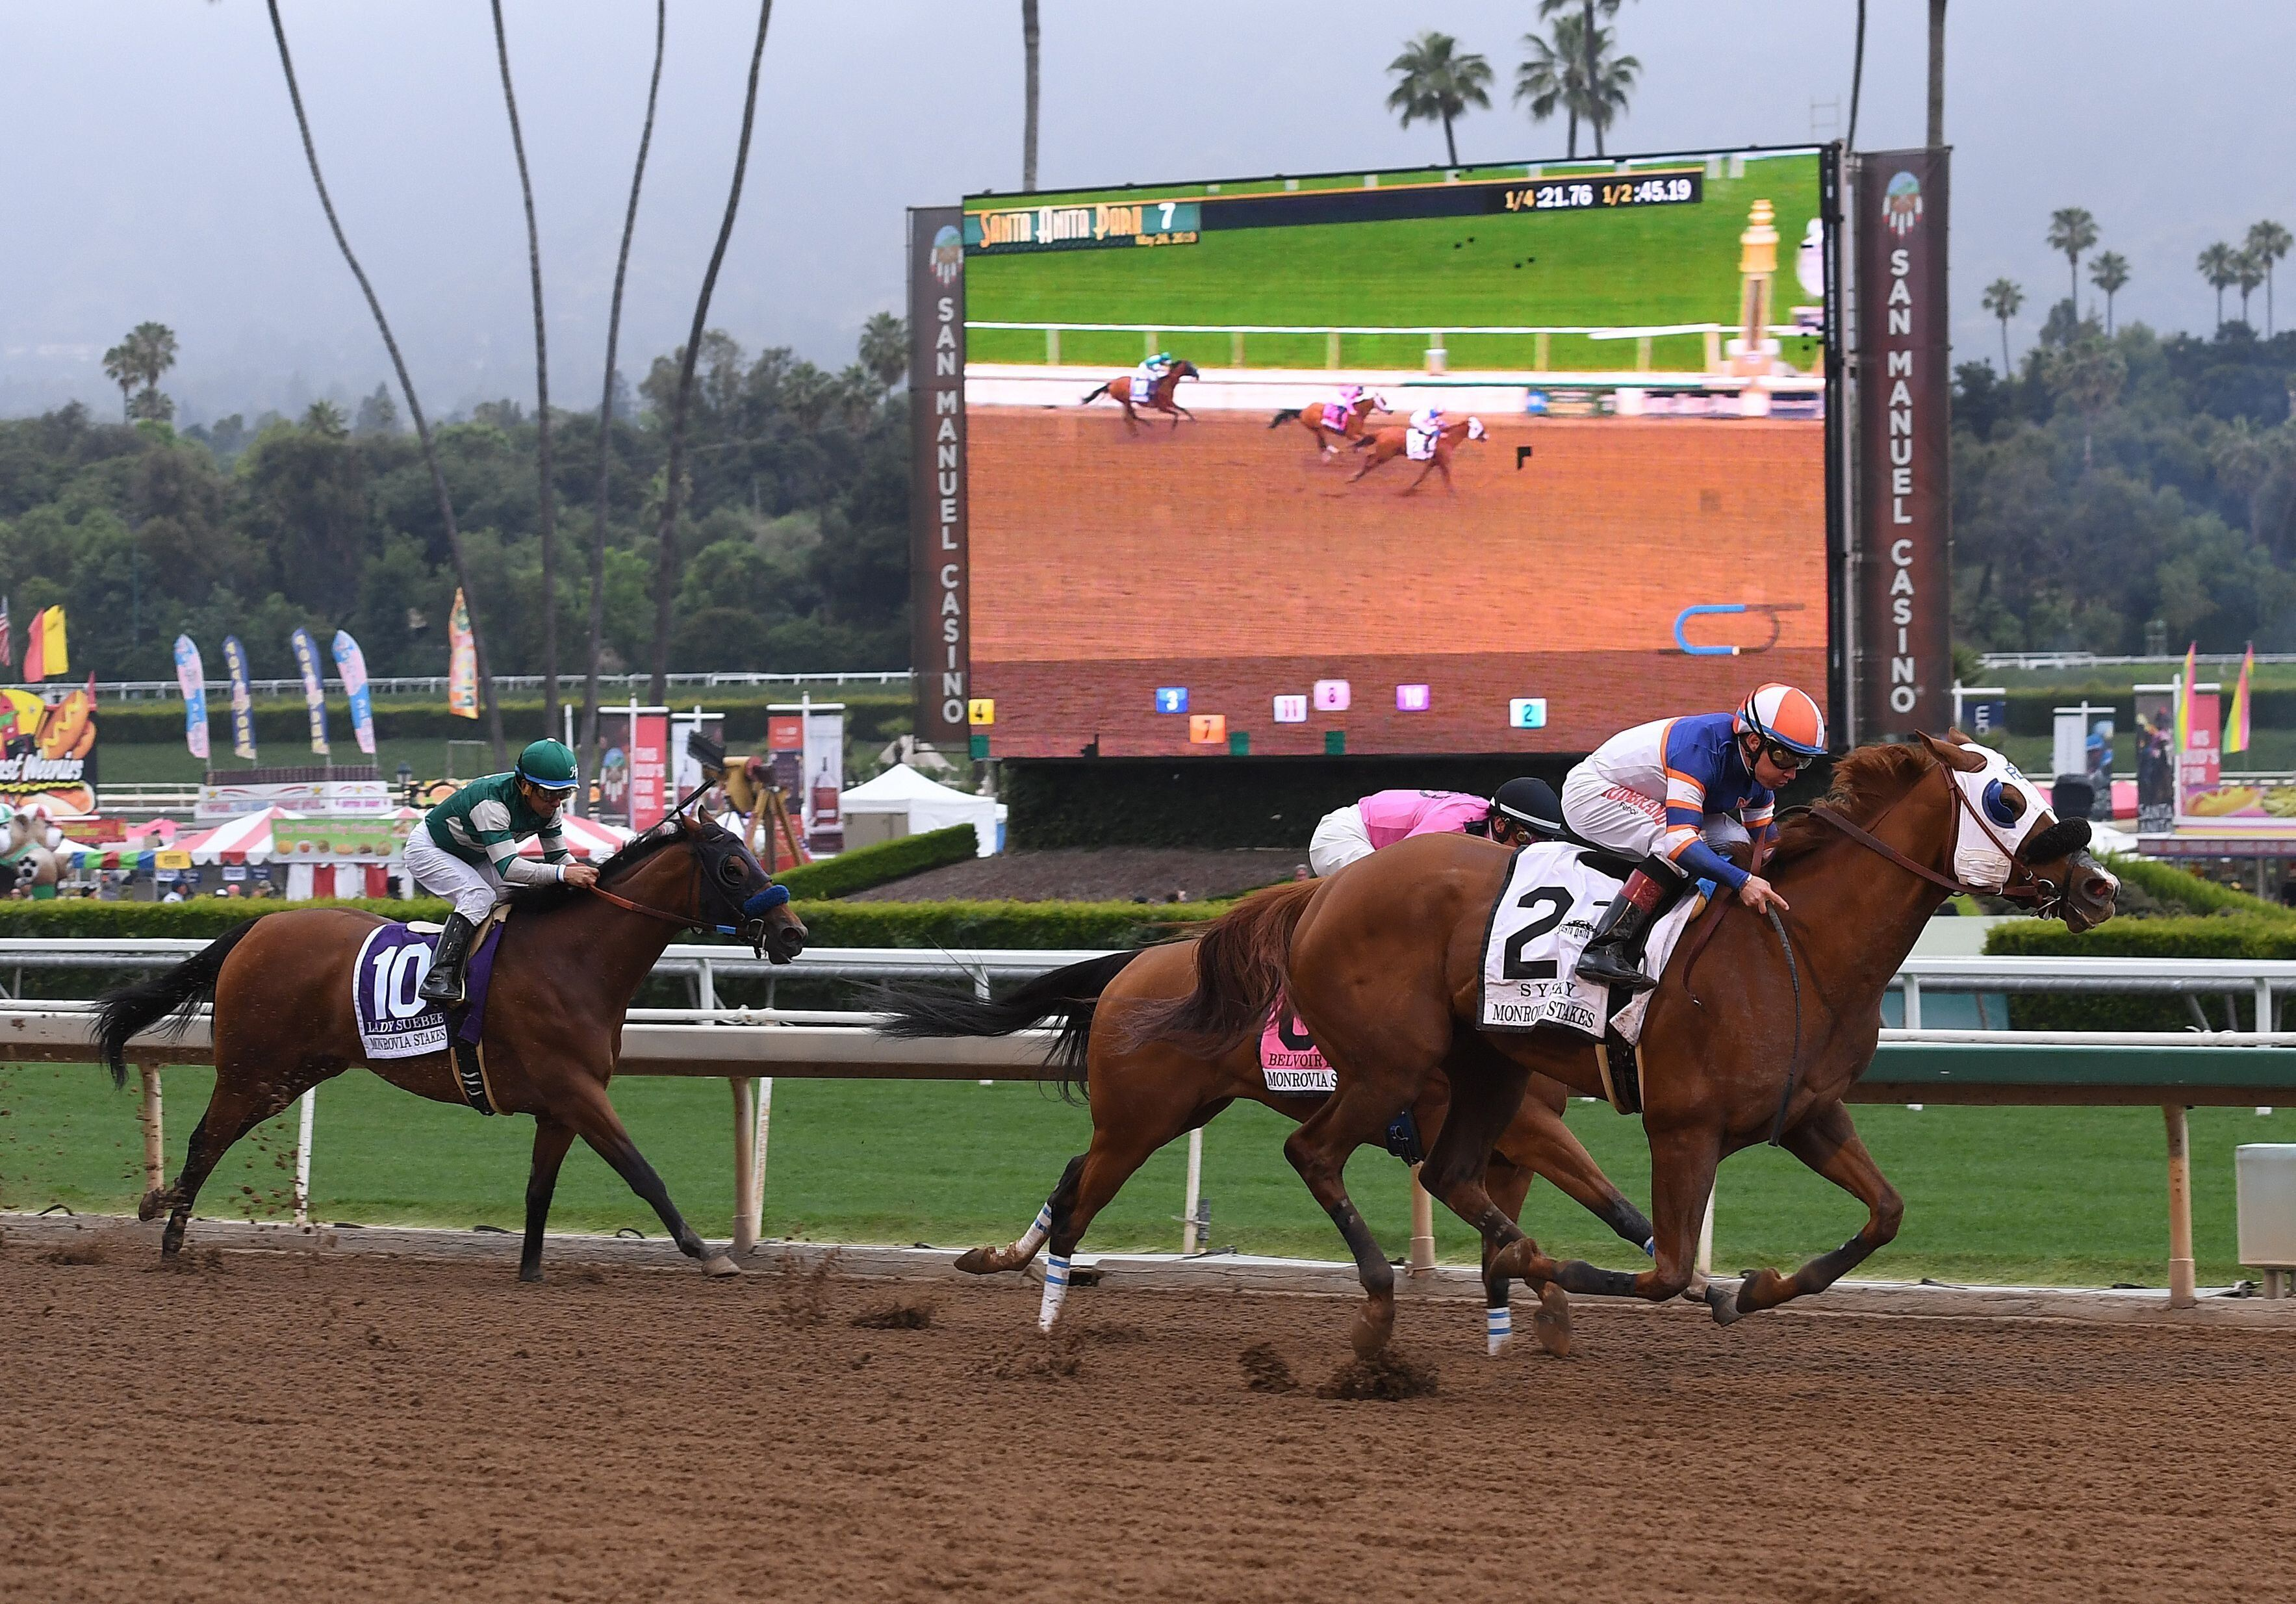 Horses race at the Santa Anita Racetrack on May 26 as controversy continues over the high number of horse deaths at the track